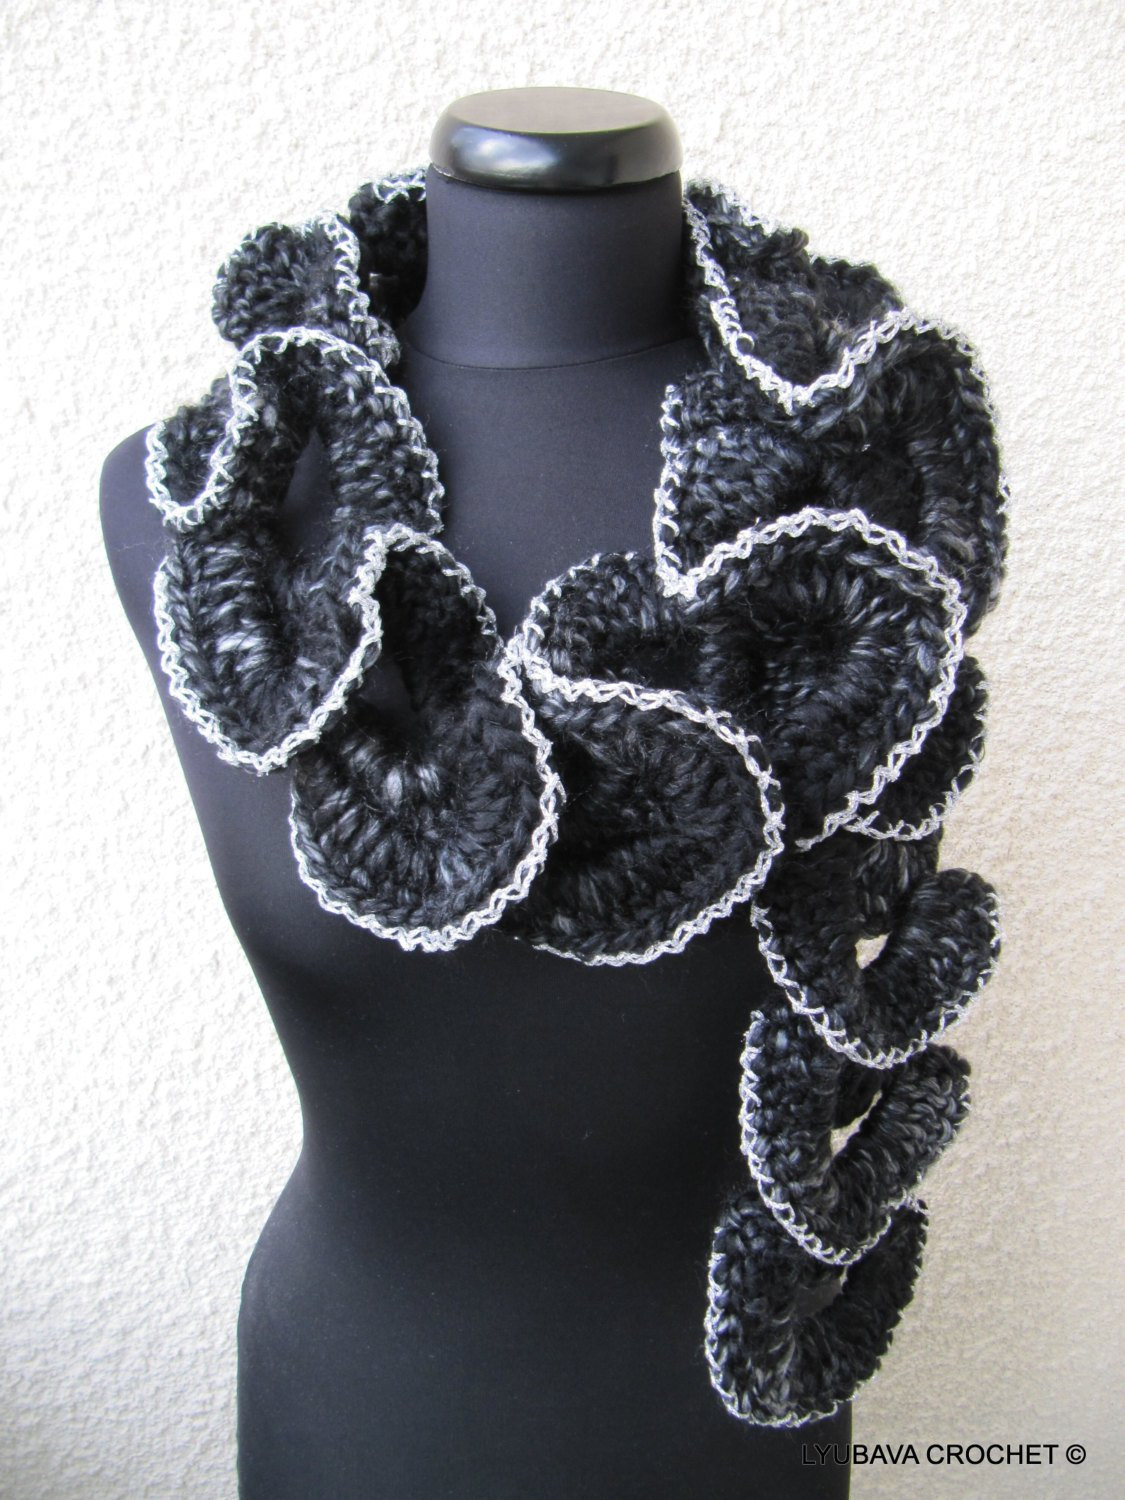 Inspirational Crochet Scarf Pattern Chunky Crochet Ruffle Scarf Pattern Crochet Ruffle Scarf Of Lovely 24 Best Images About Crochet Ruffle Scarf On Pinterest Crochet Ruffle Scarf